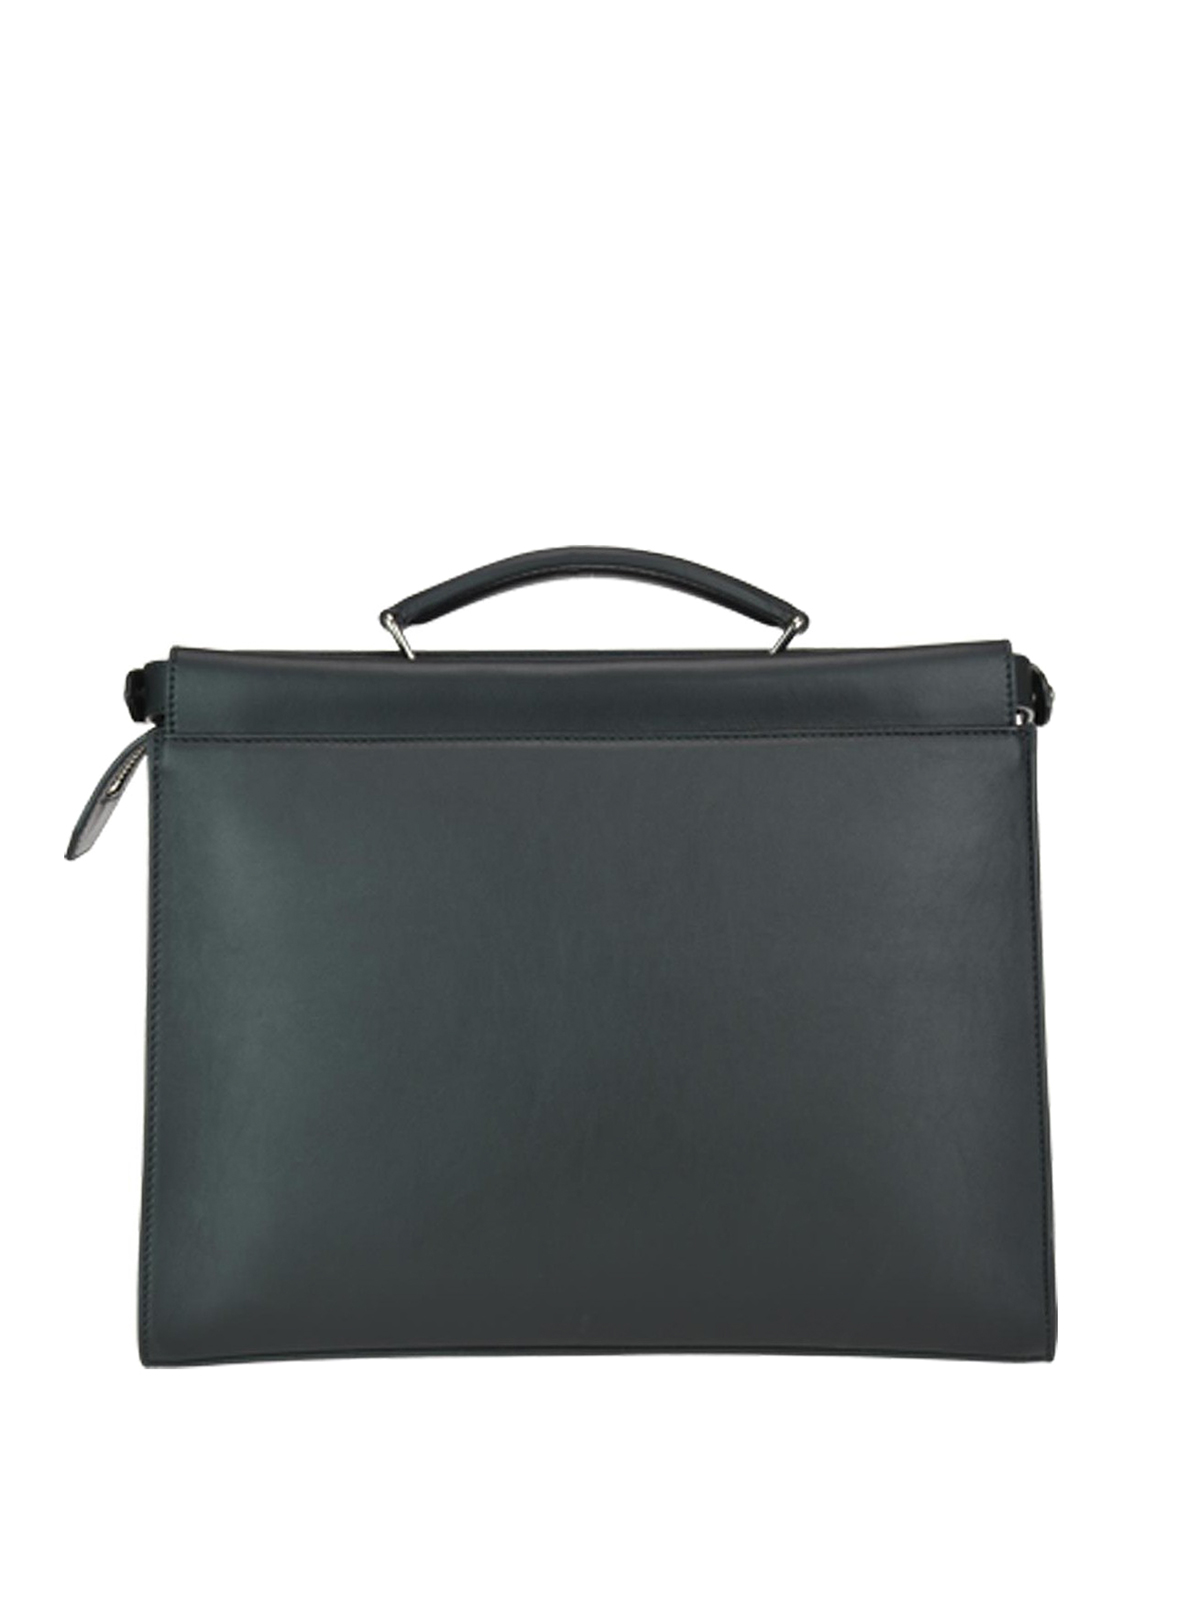 Leather Bag Briefcases Thin Fit Fendi Peekaboo Bagsamp; Laptop dCxBeo